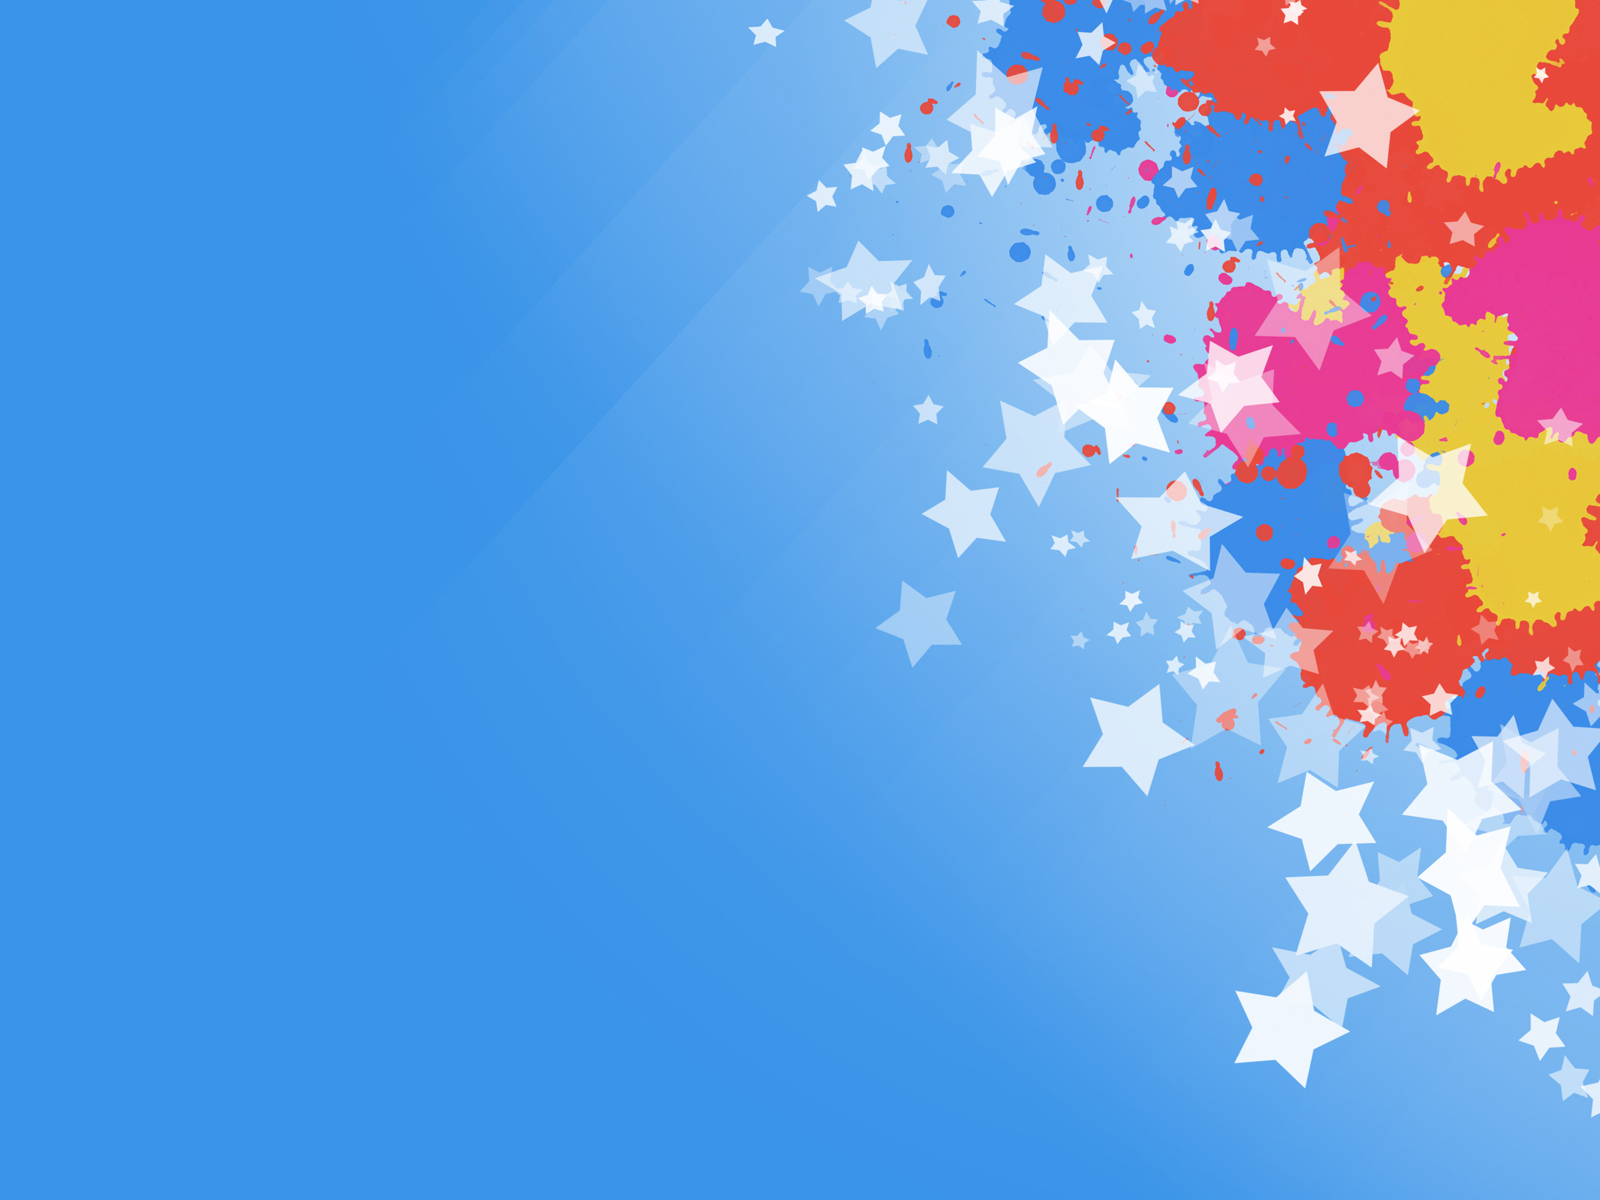 birthday party wallpaper background ; celebration-backgrounds-wallpapers